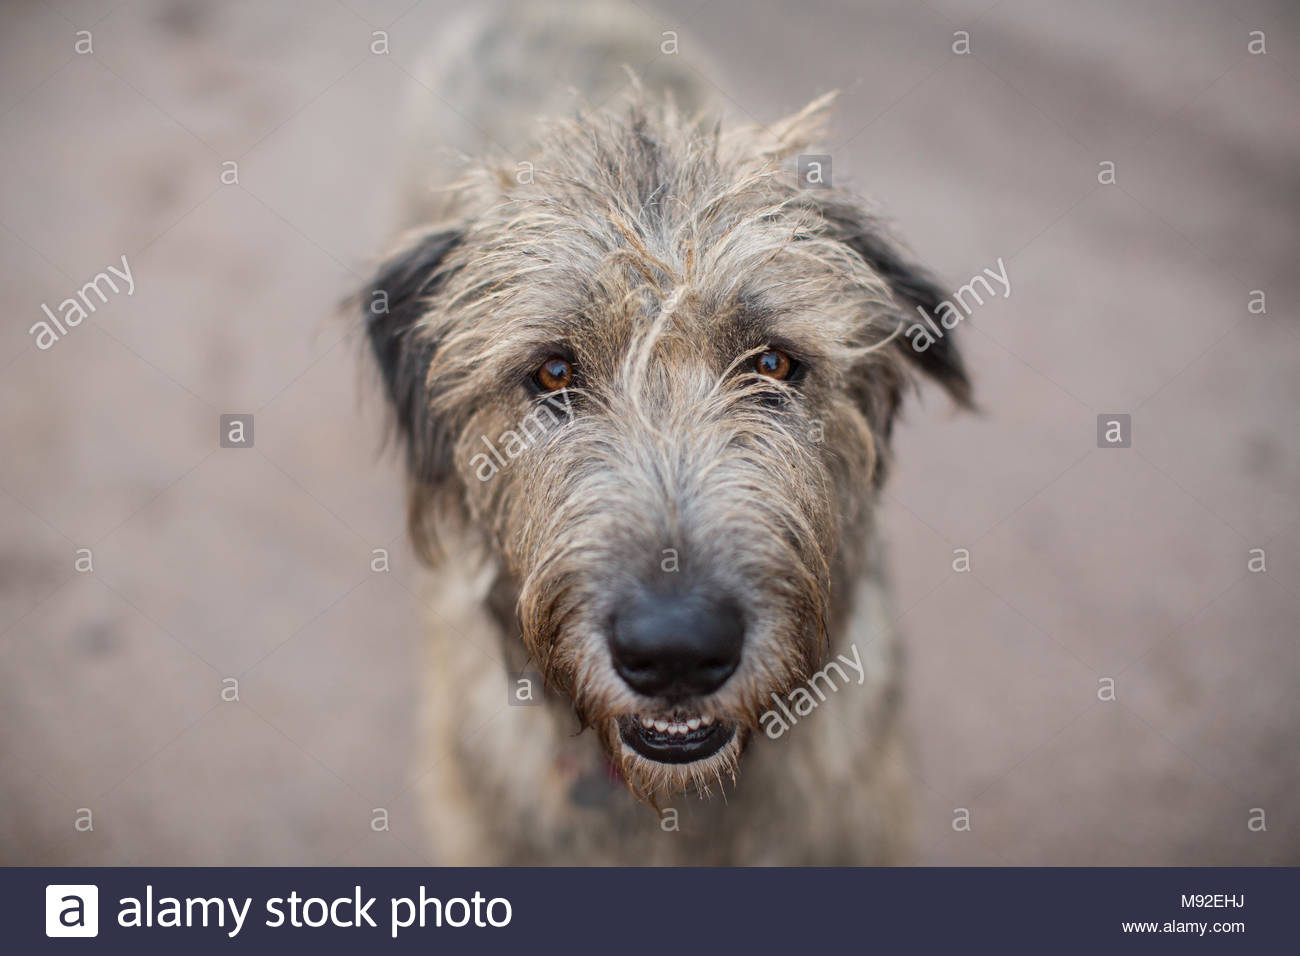 Close-up of an Irish Wolfhound with soulful brown eyes - Stock Image